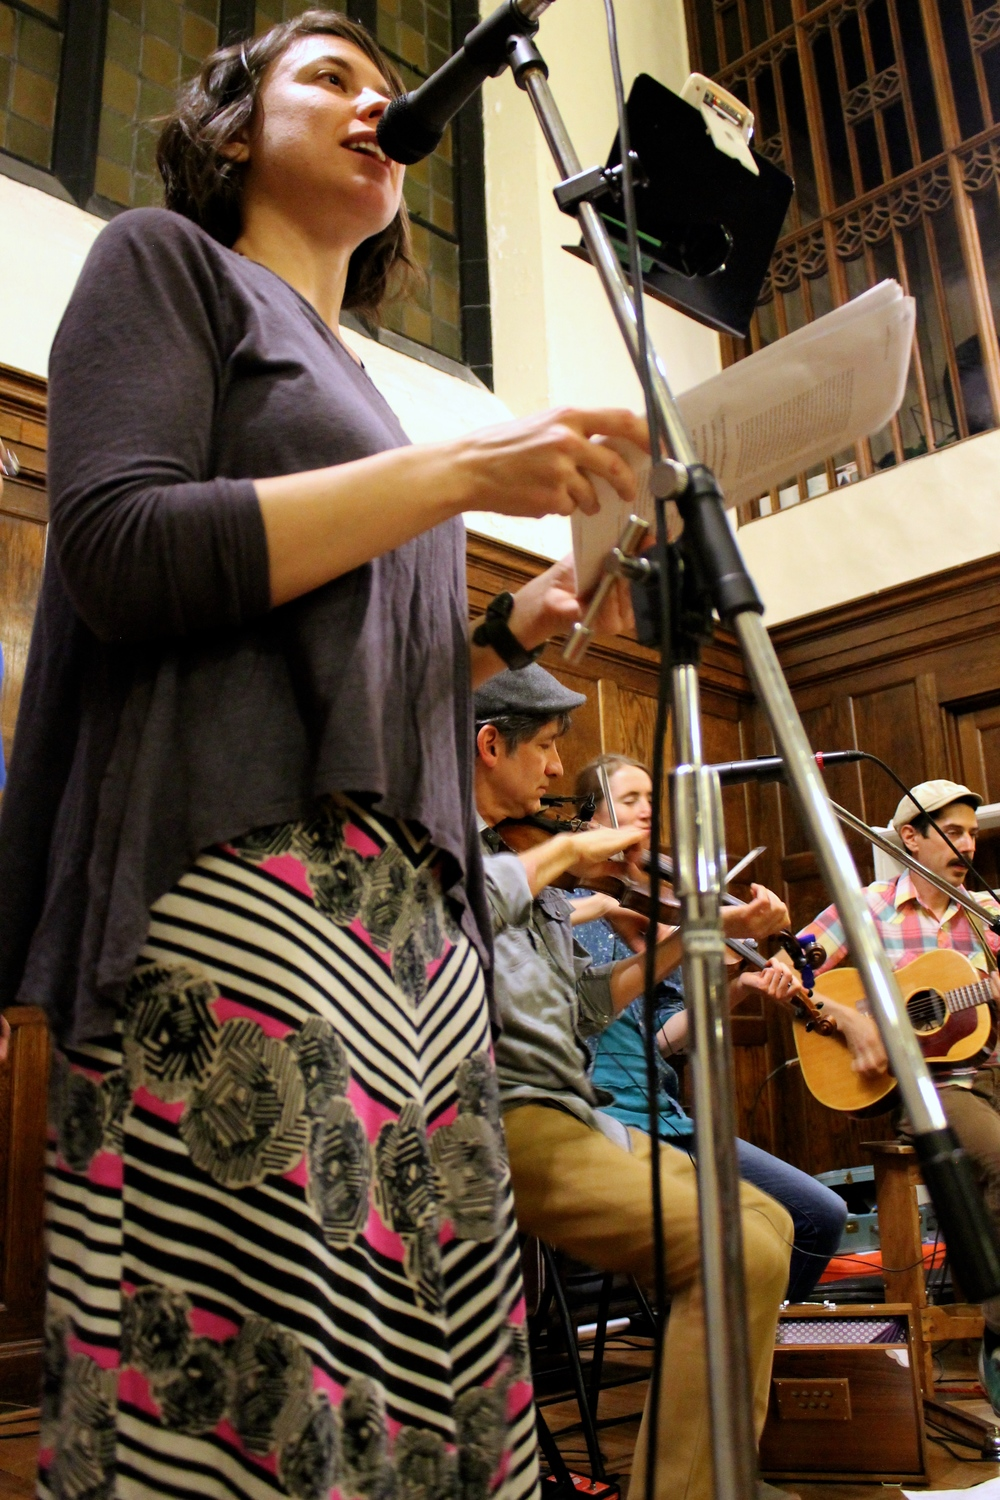 Image of Dela Taylor and Sassafras Stomp (John Pranio, Johanna Davis & Adam Nordell) at the April 21, 2016 Portland Intown Contra Dance   by Naomi Marthai.